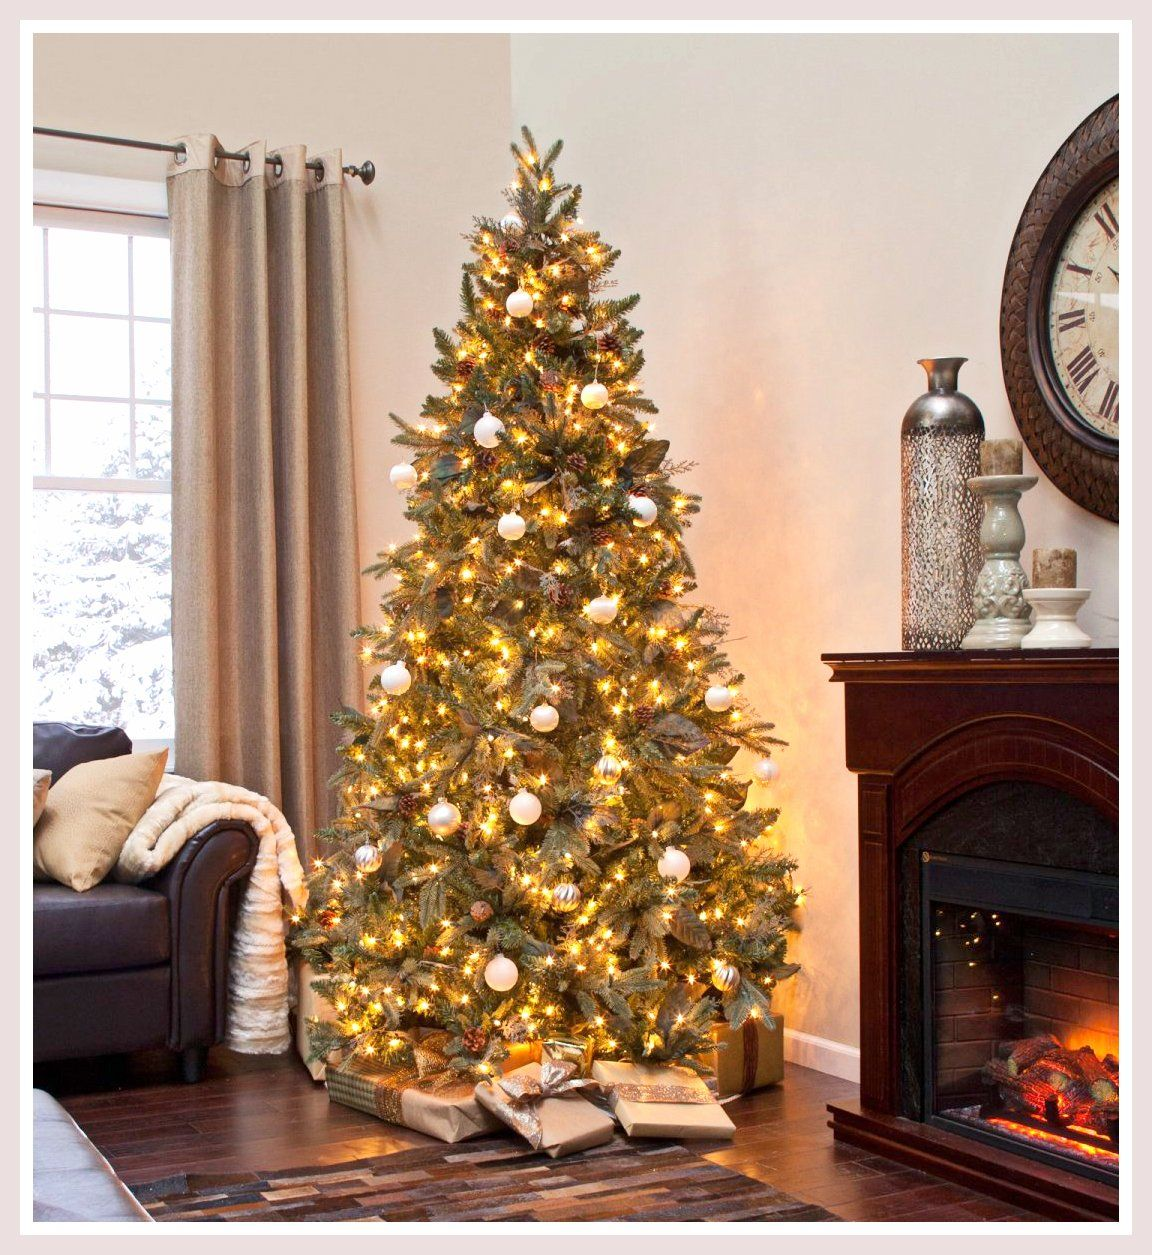 Bon 2012 Best Christmas Tree Ideas | ILOVESBD | South Beach Diamond Magazine